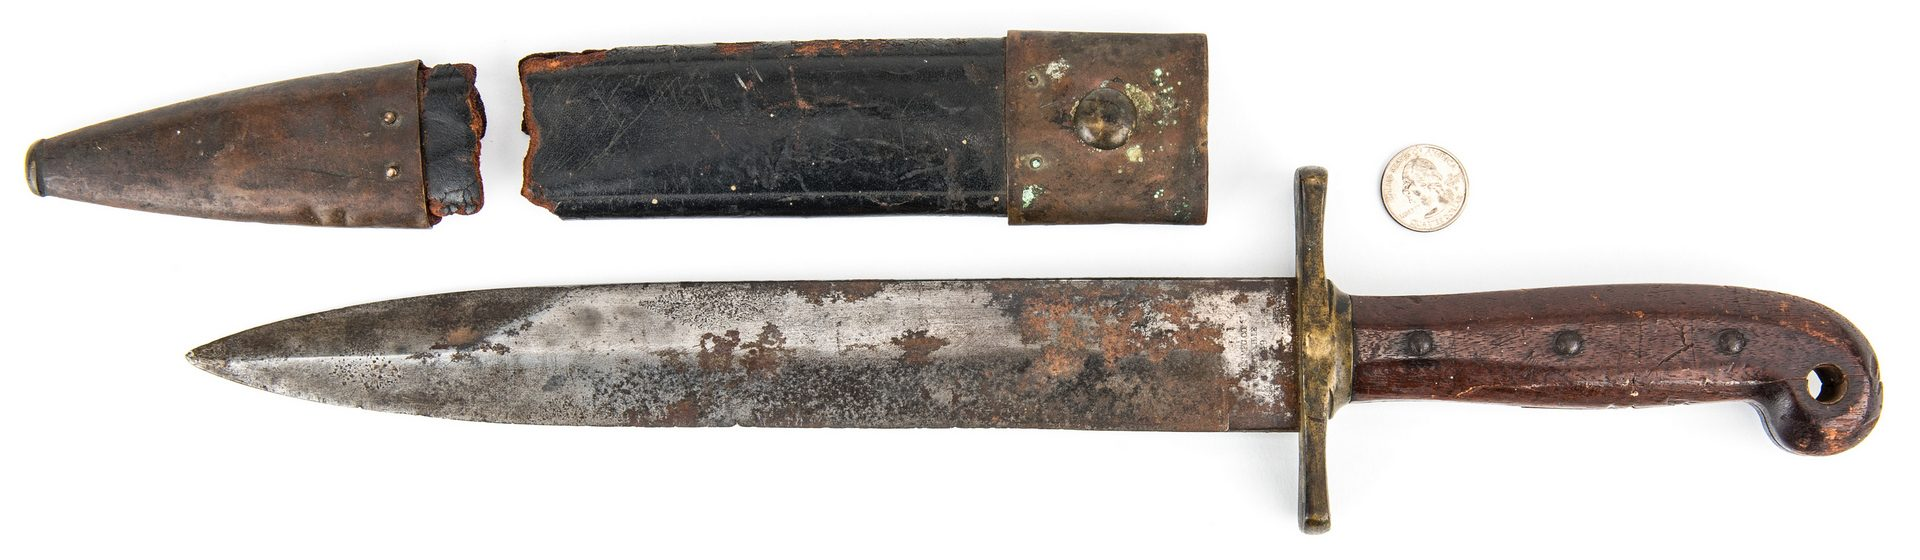 Lot 331: Civil War Ames U.S. Model 1849 Rifleman's Knife with Scabbard